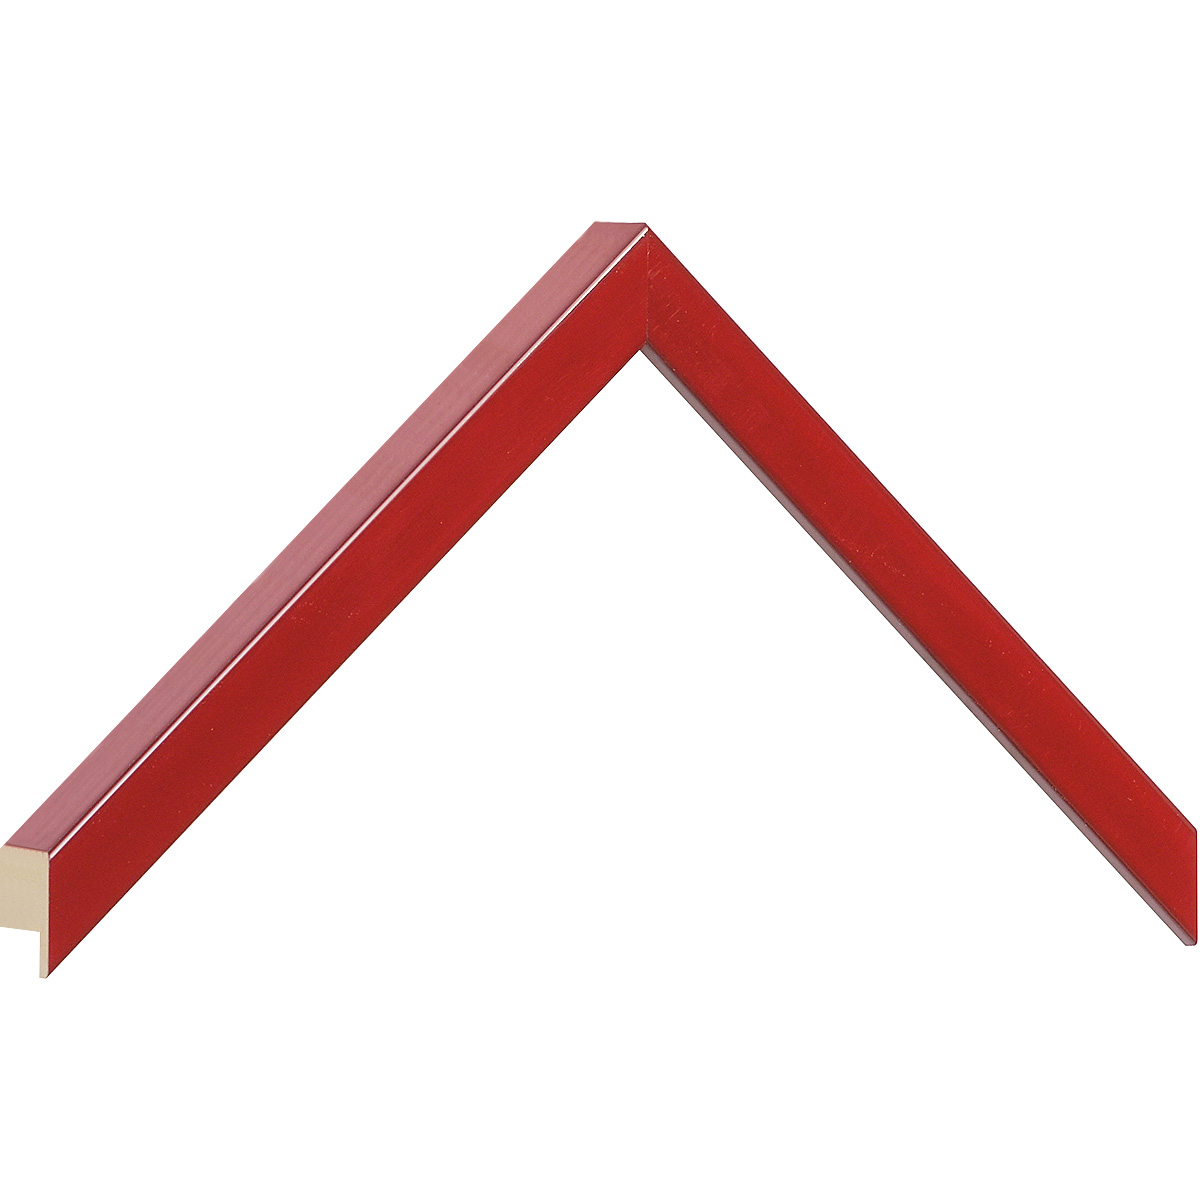 Moulding ayous, width 15mm height 25 - red lacquered